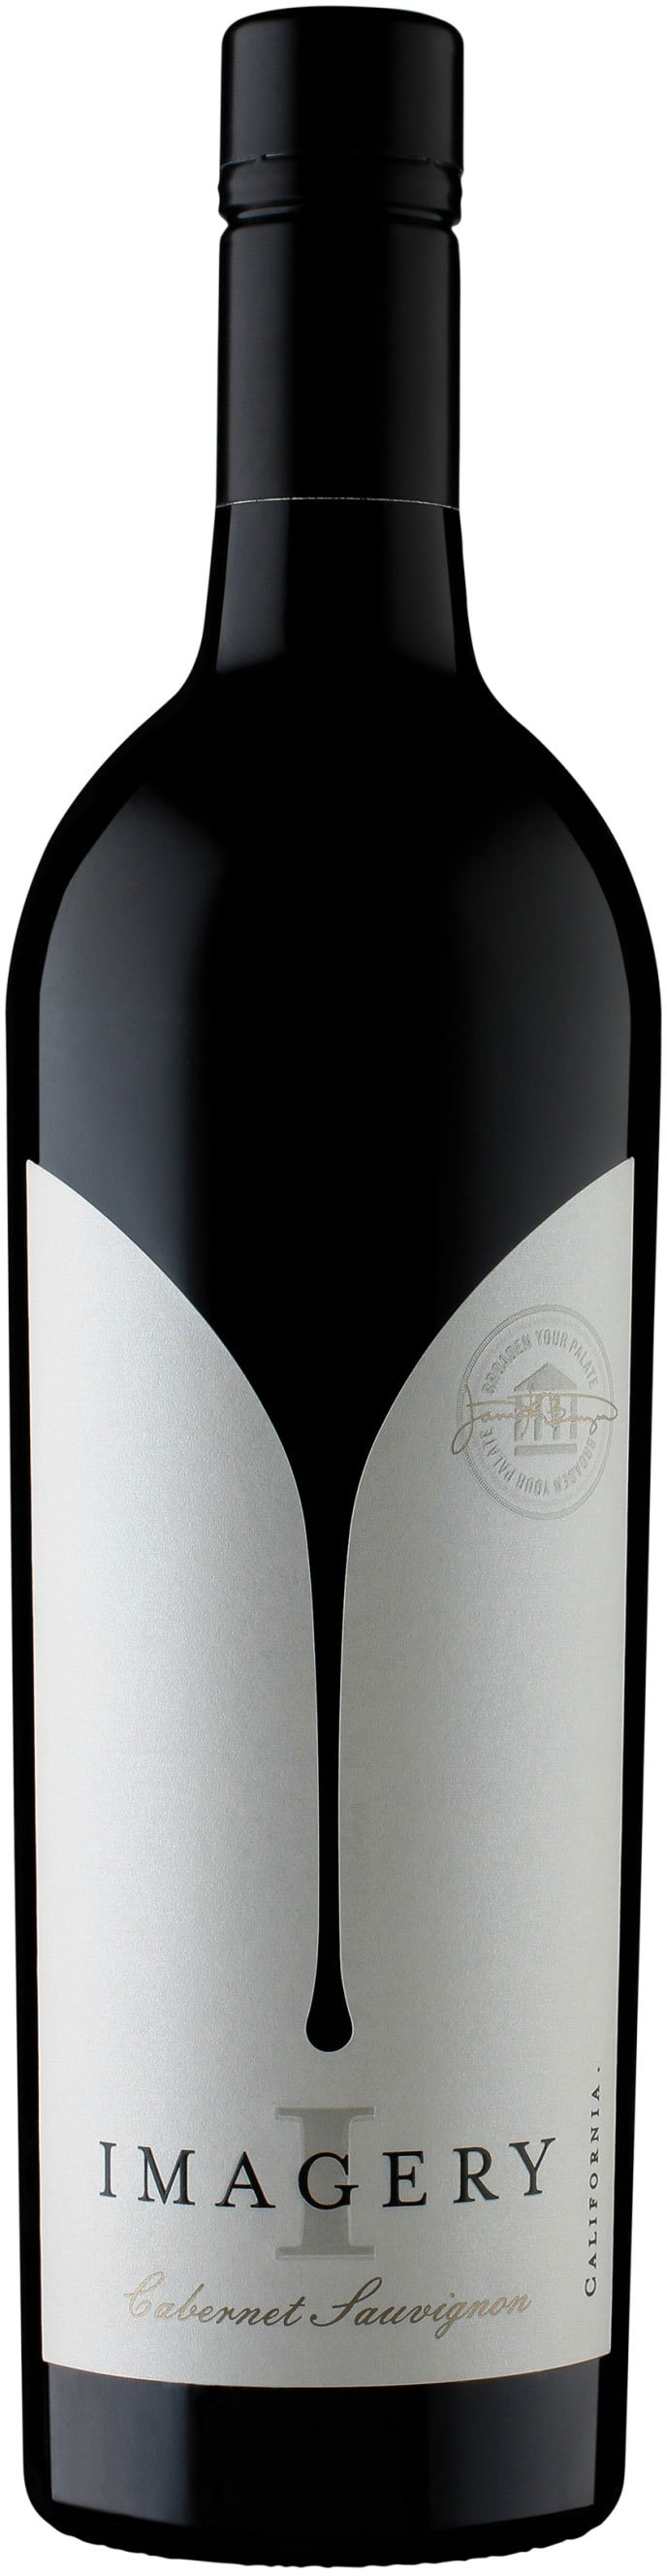 Imagery Estate Winery Cabernet Sauvignon 2018